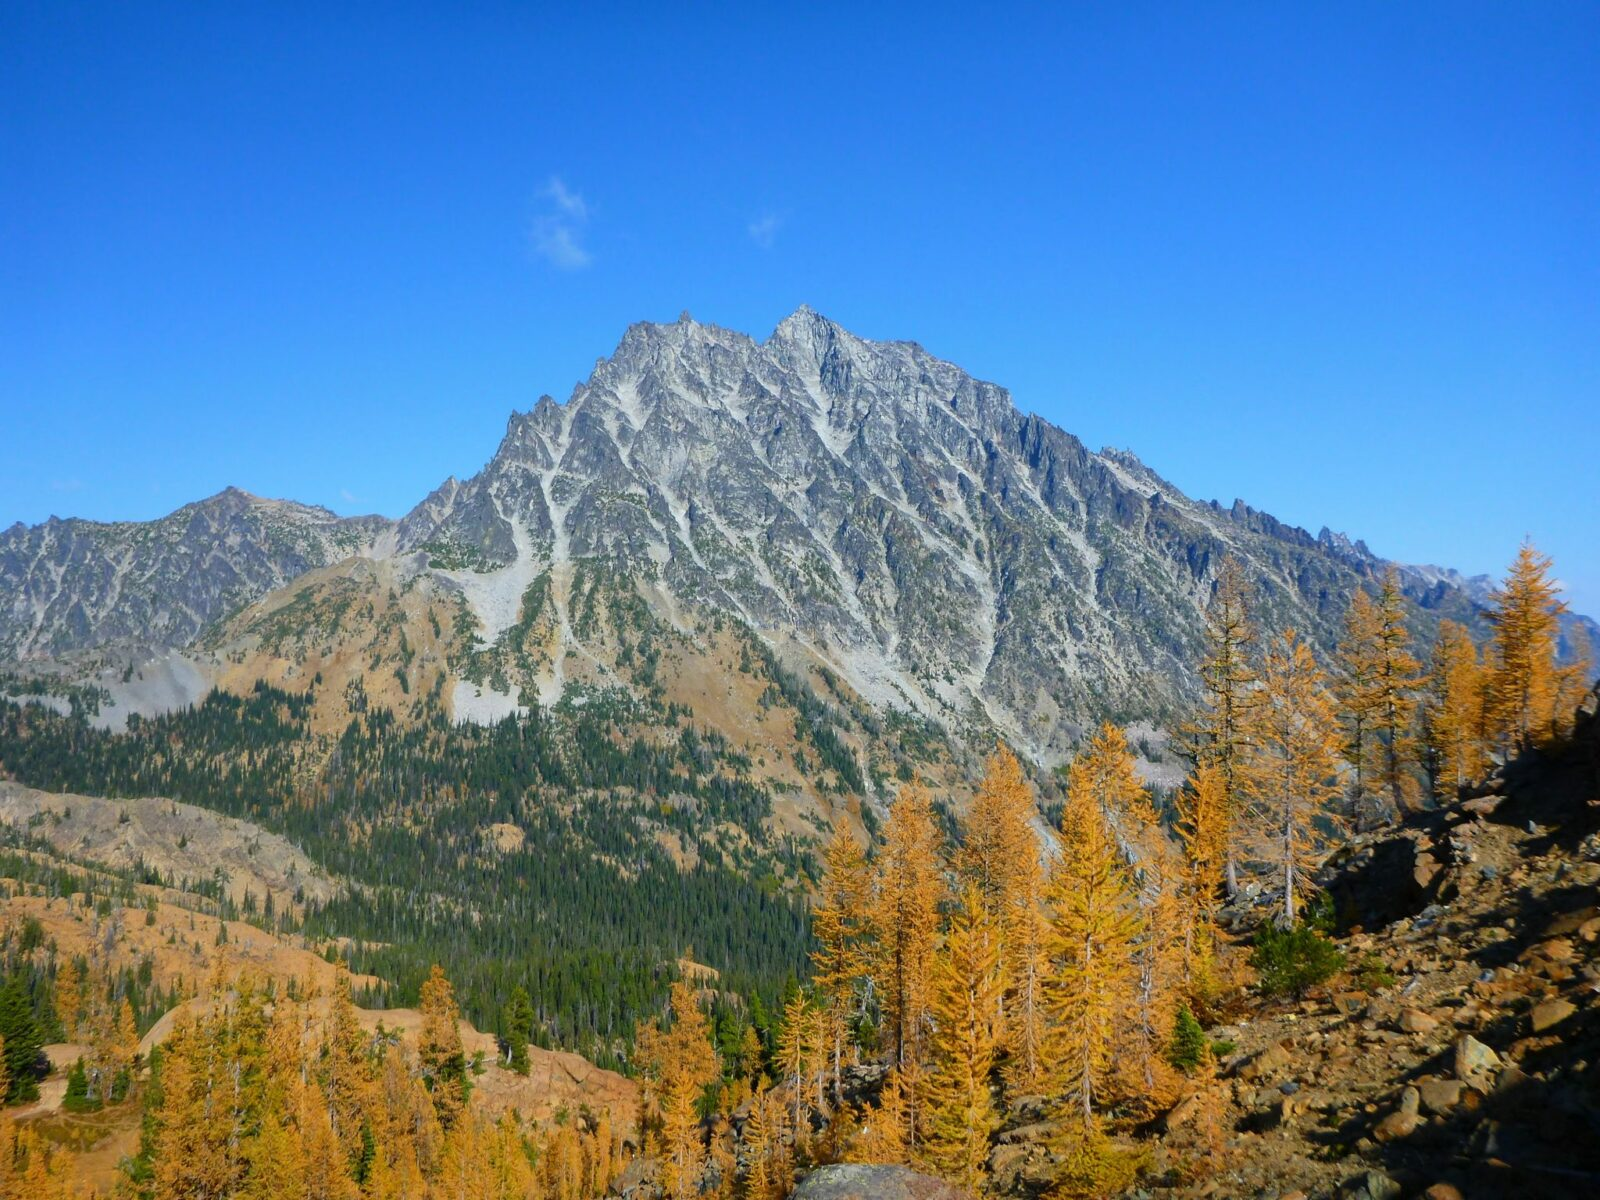 A high granite mountain against a blue sky. Golden larch trees frame the mountain in the foreground on one of the best larch hikes in washington, Lake Ingalls